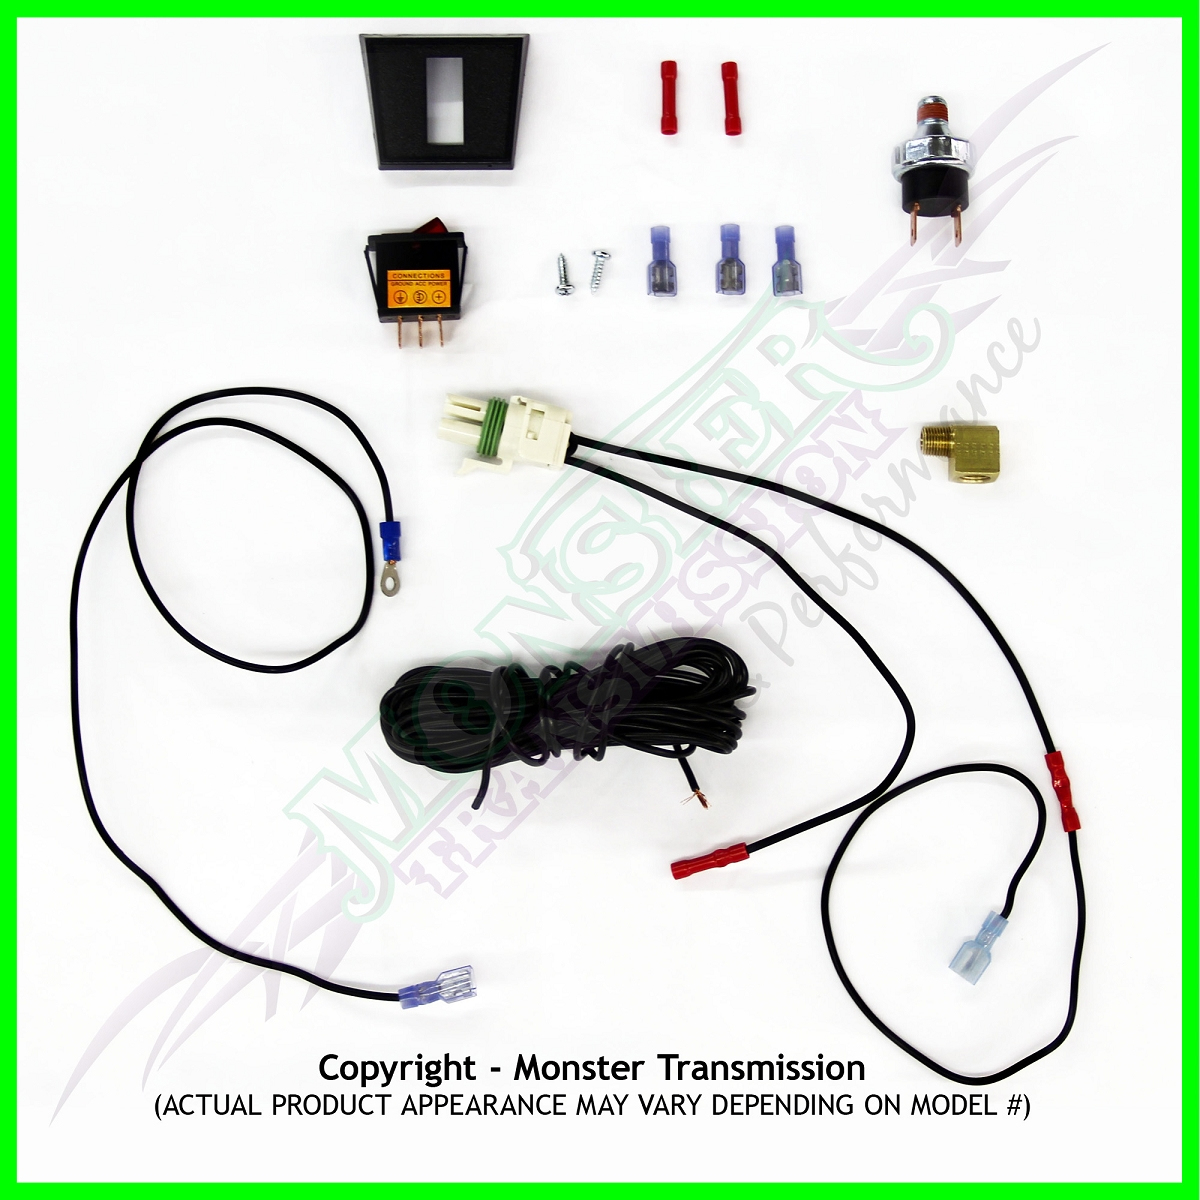 200-4R External Lock-Up Kit - 200R4 Lockup Wiring Diagram